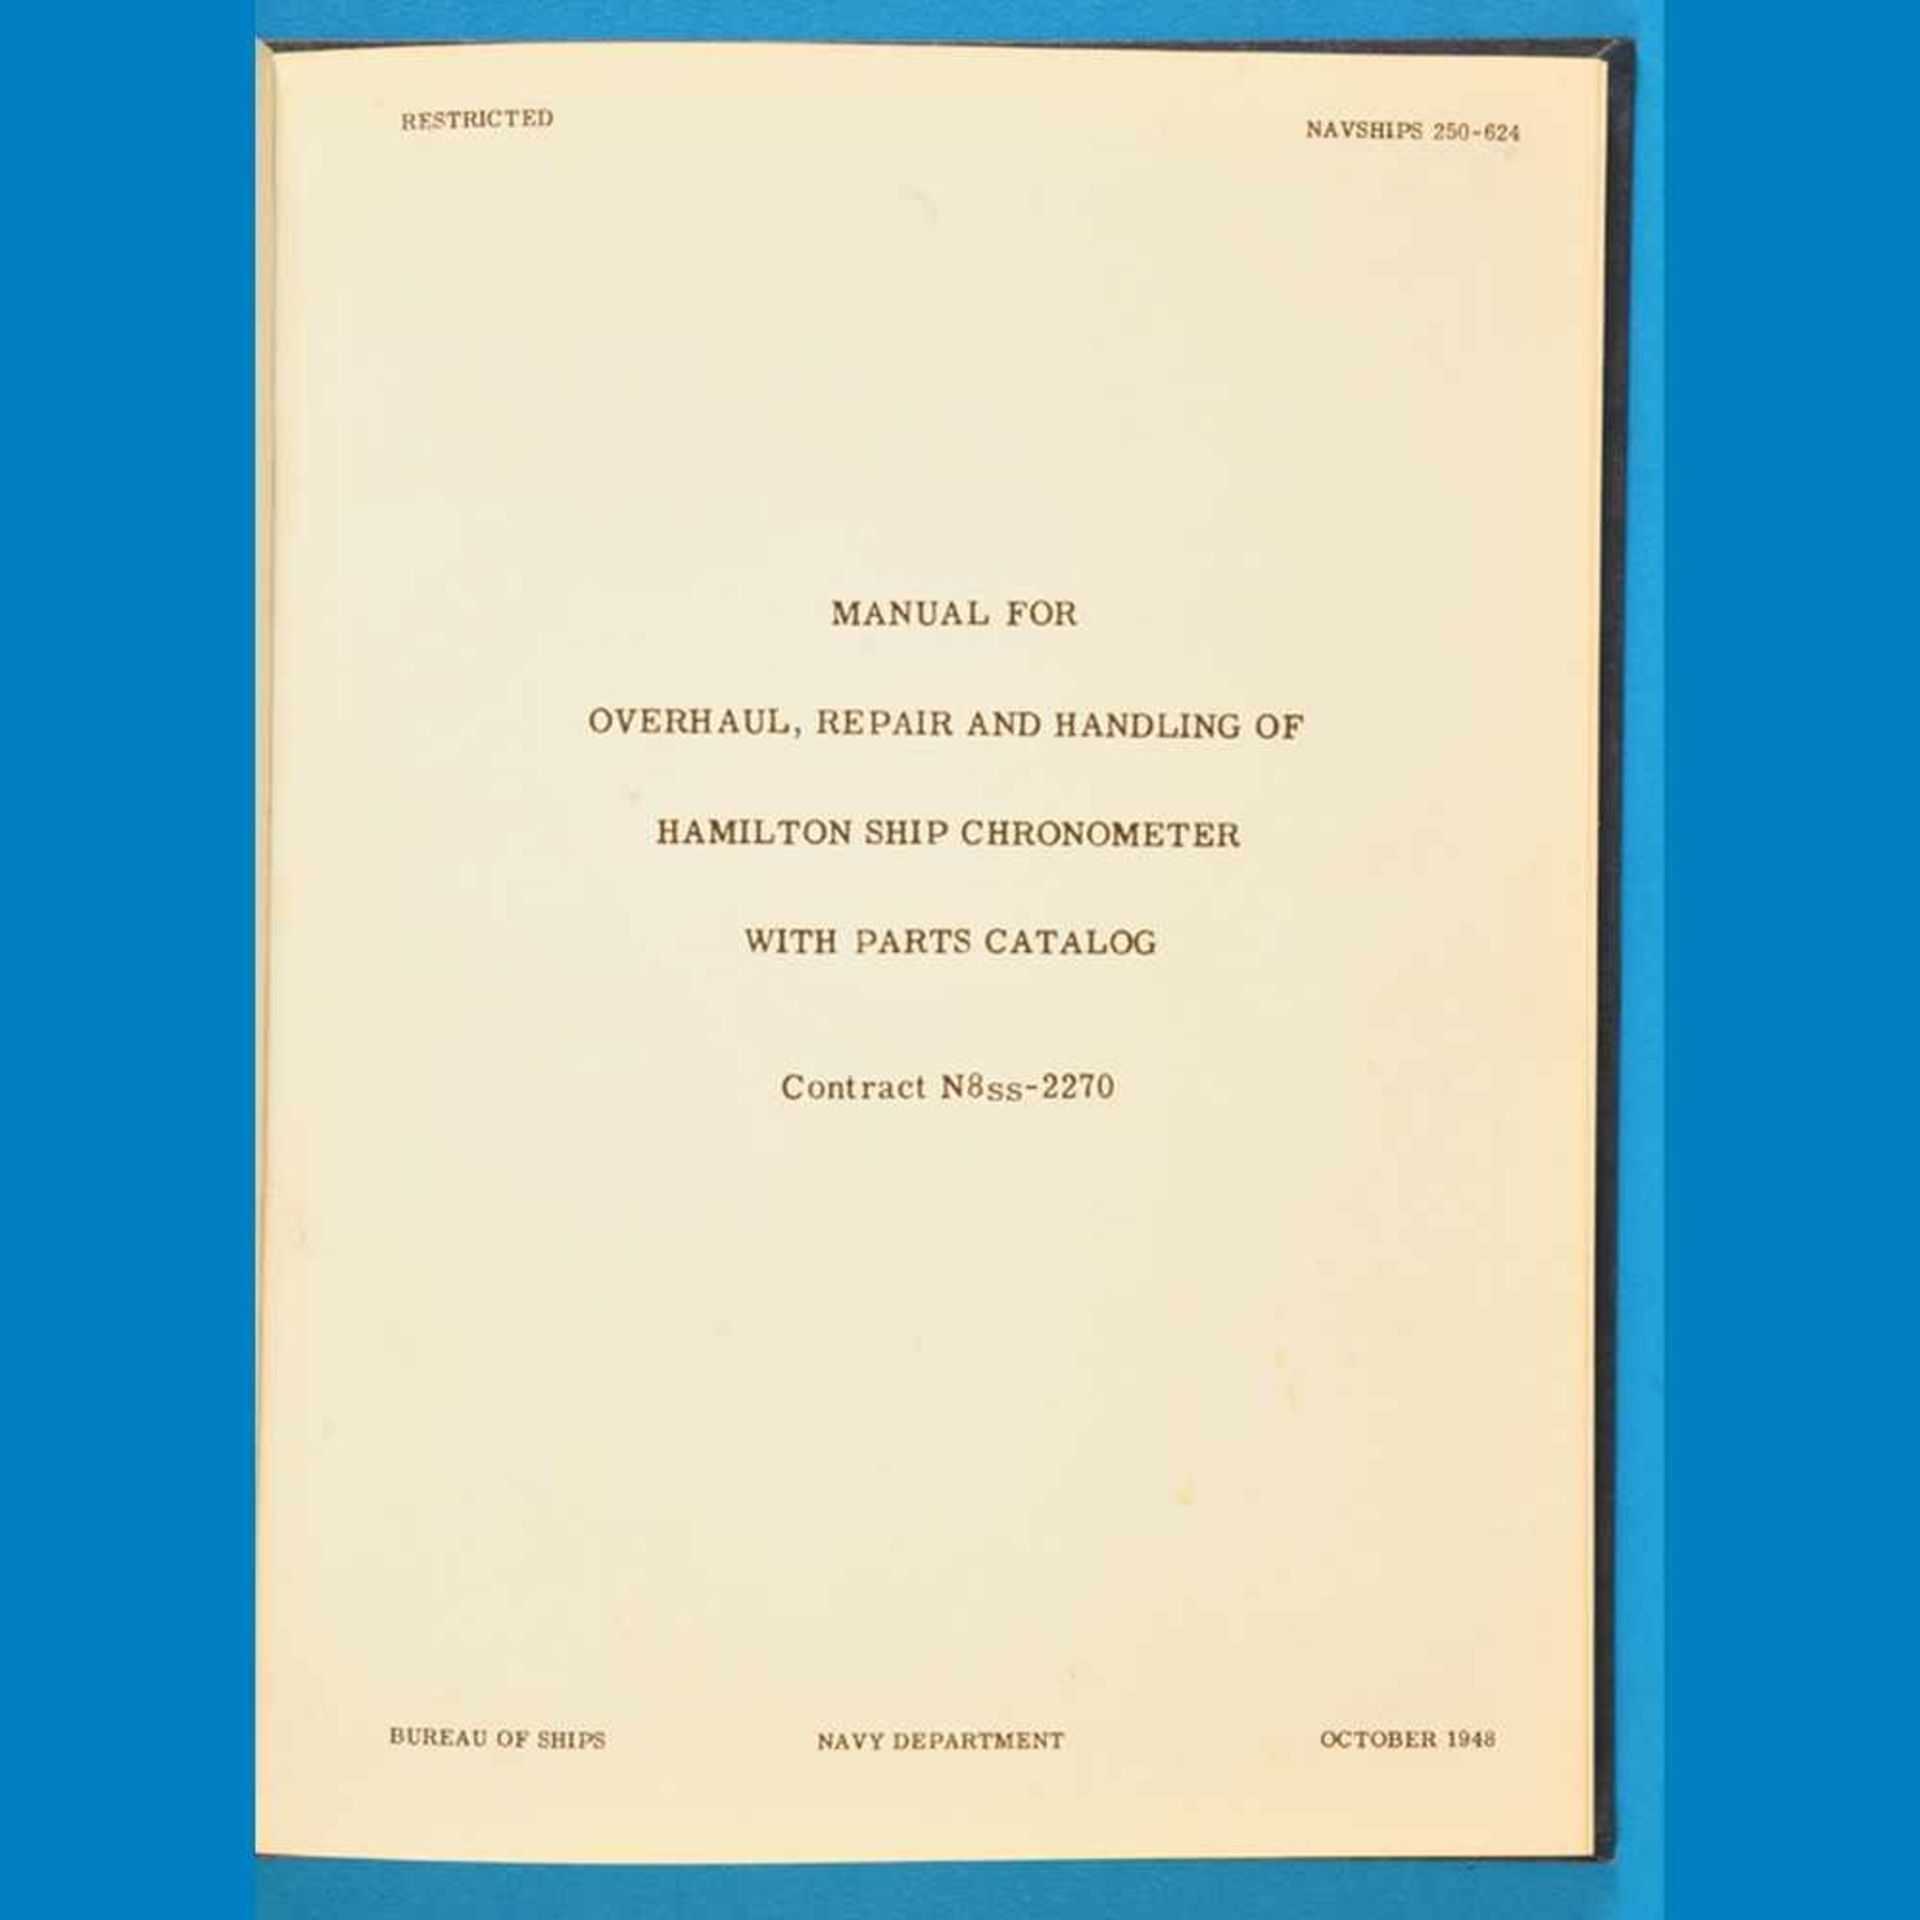 Manual for Overhaul, Repair and Handling of Hamilton Ship Chronometer with Parts Catalog, Contract